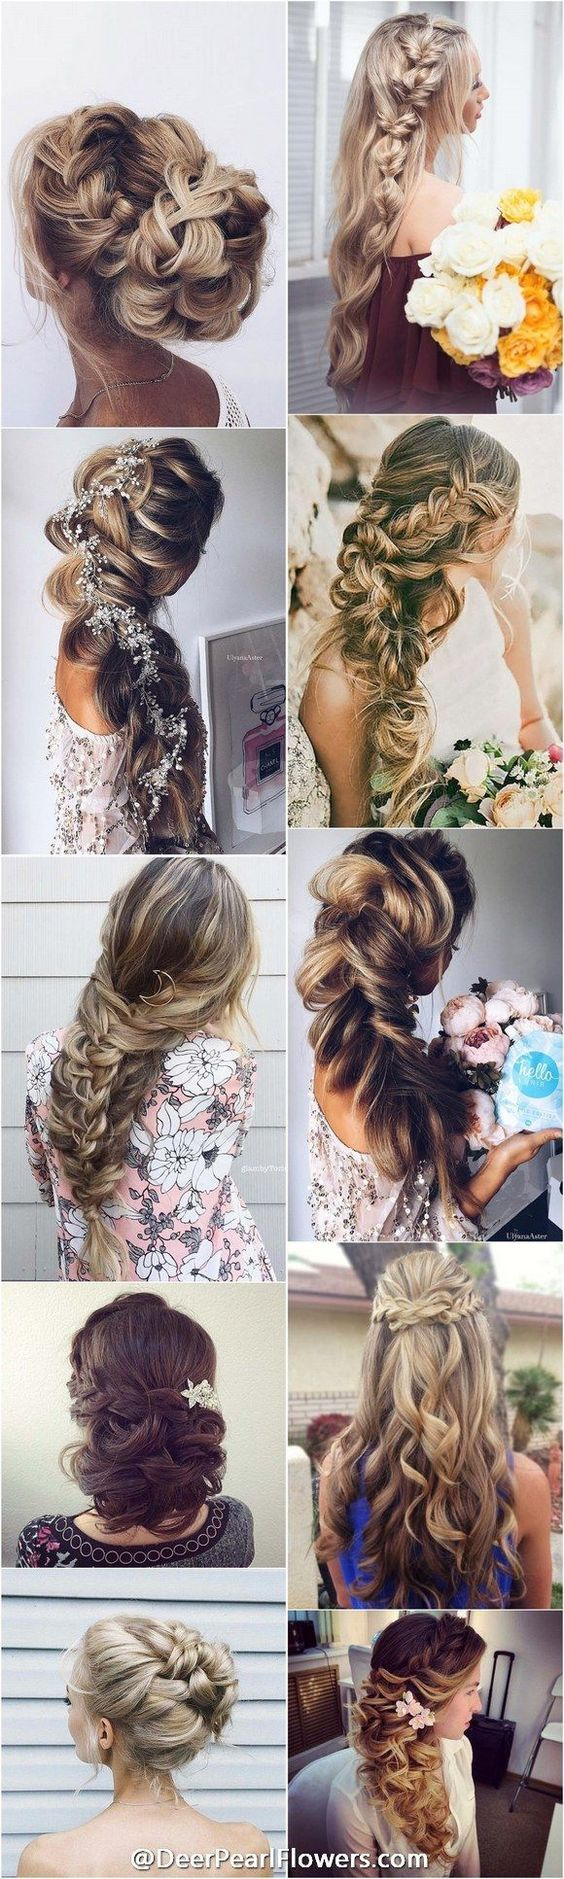 60 Prom Hairstyles for Long Hair   Regardless if you have curly, straight, thin, thick or wavy hair you'll find a style perfect for your next prom, homecoming or pageant by clicking the link below:   https://thepageantplanet.com/60-prom-hairstyles-for-long-hair/